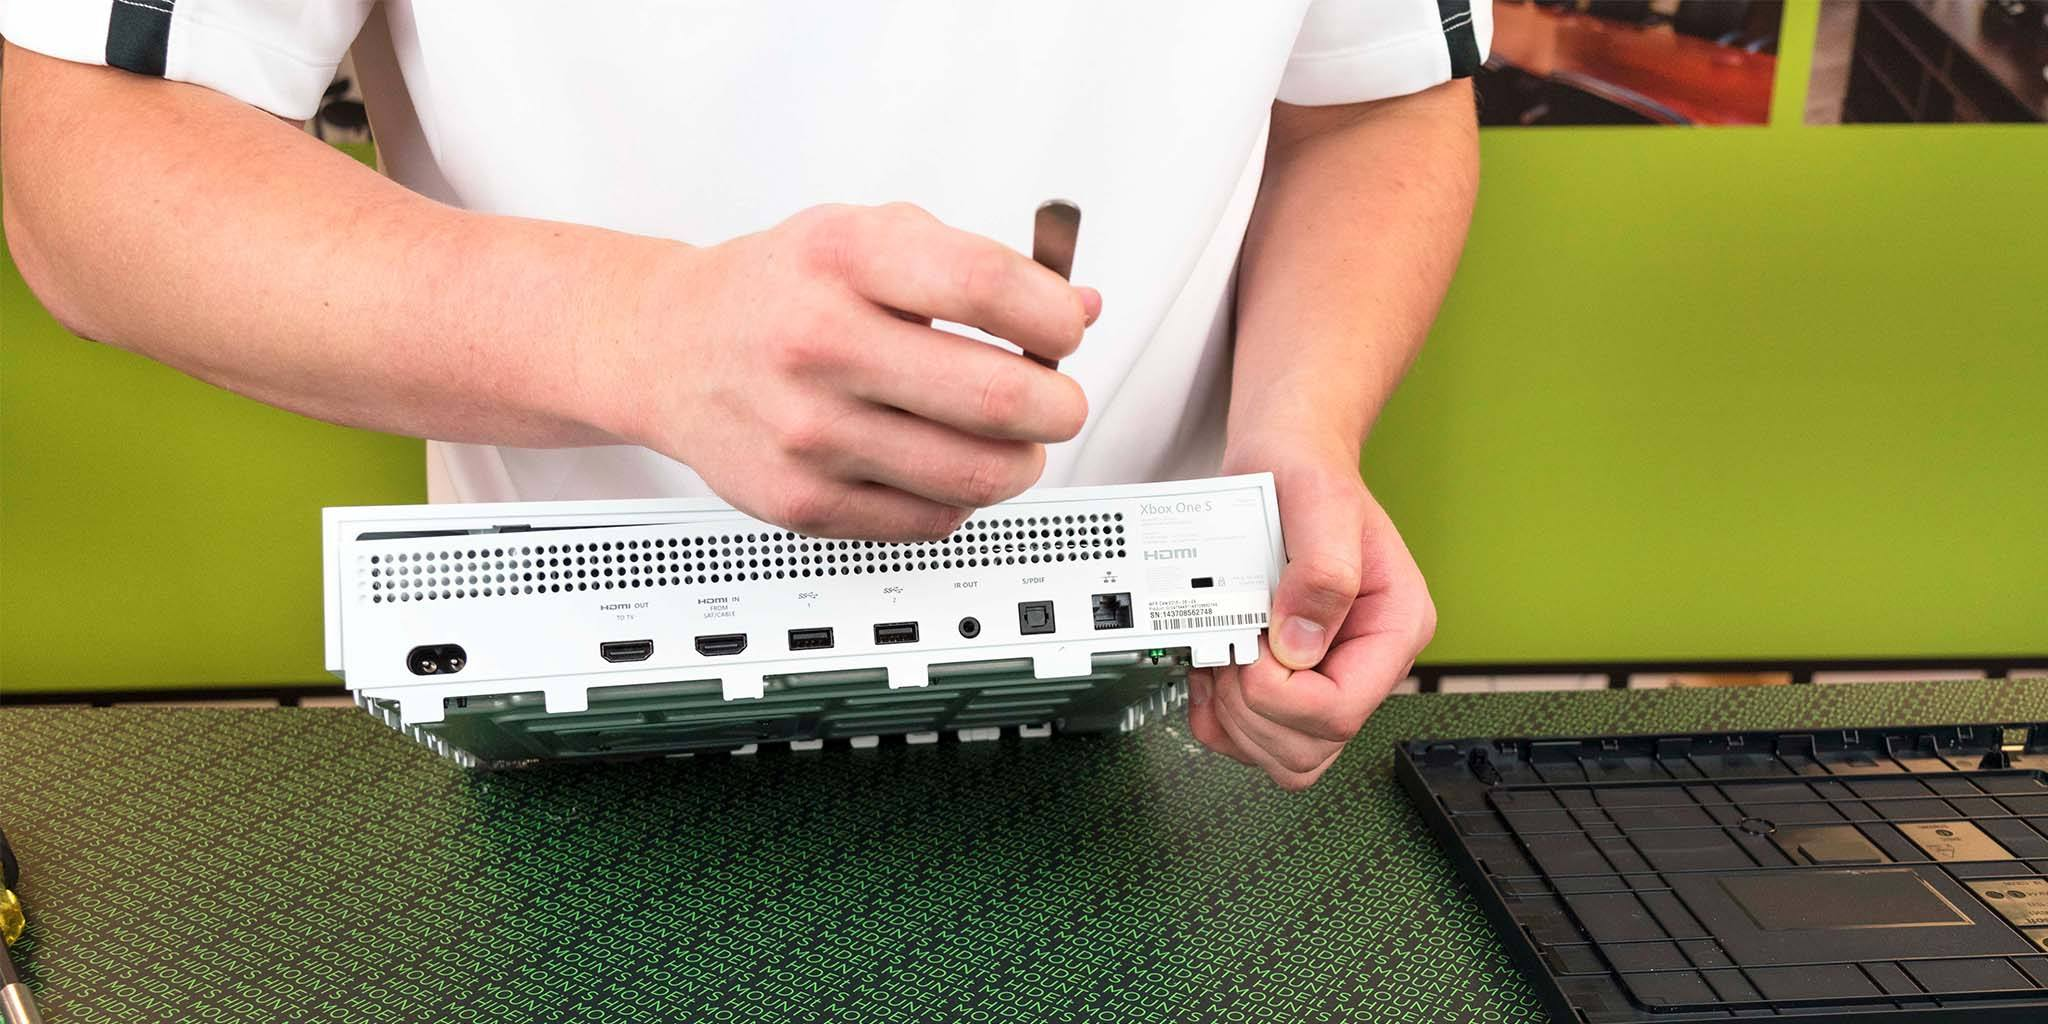 Xbox One S Cleaning Guide - HIDEit Mounts